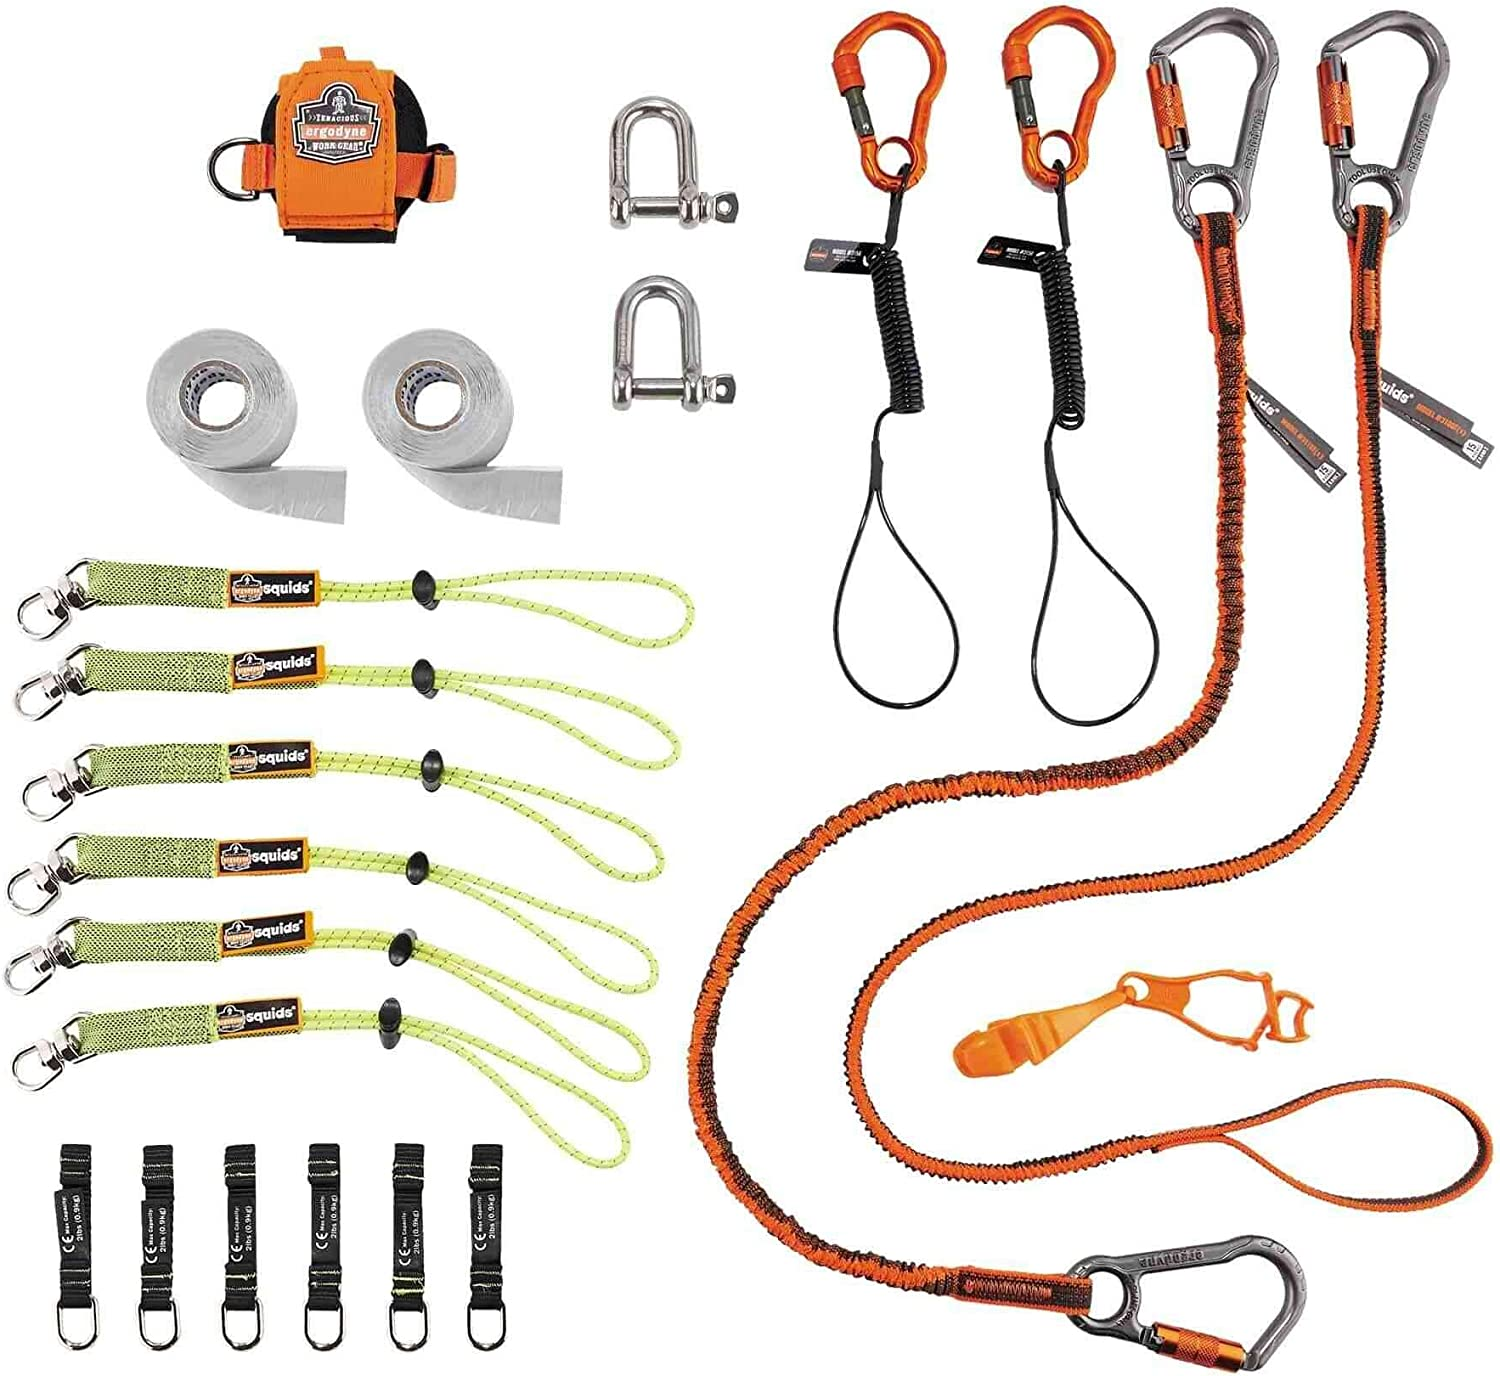 Tool Tethering Kit for Scaffholders, Includes Tool Lanyards and Attachments for Wrenches and Mallets, Ergodyne Squids 3187